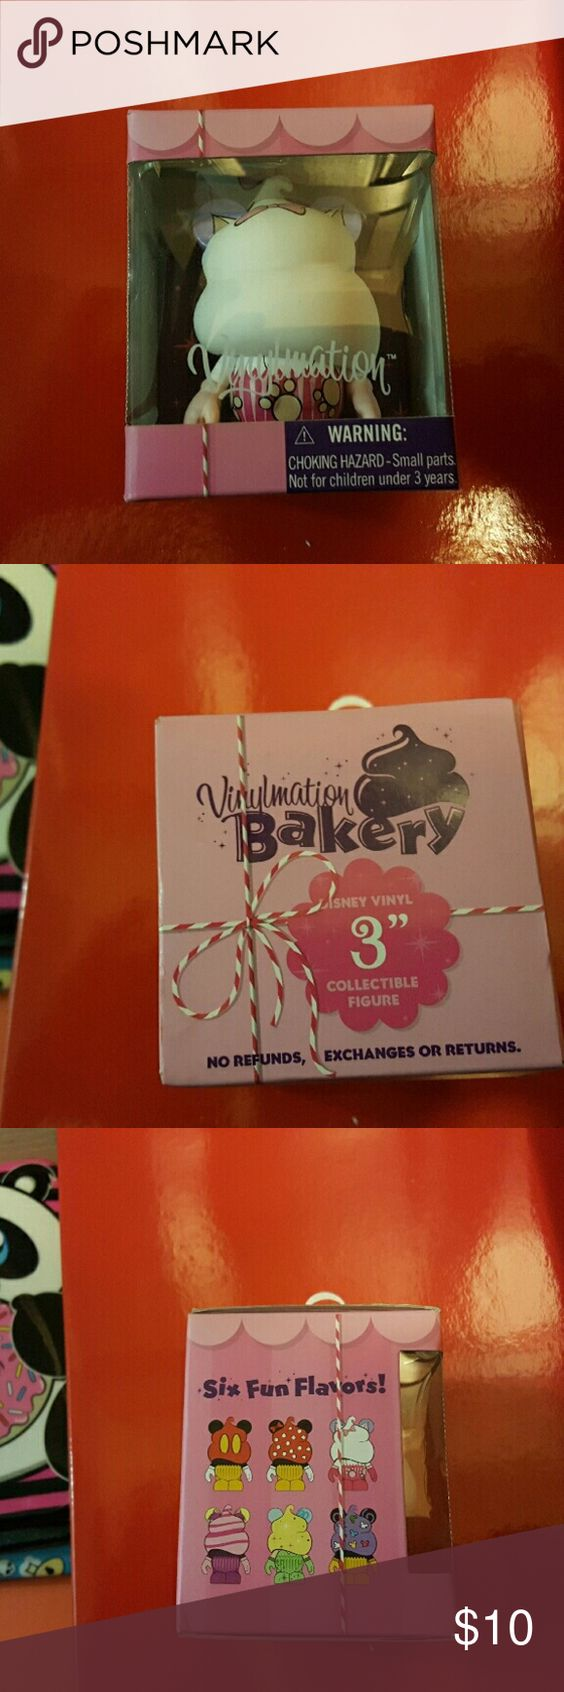 Vinylmation Bakery vinylmation. Brand new. Never been opened. Cat cupcake version. Other